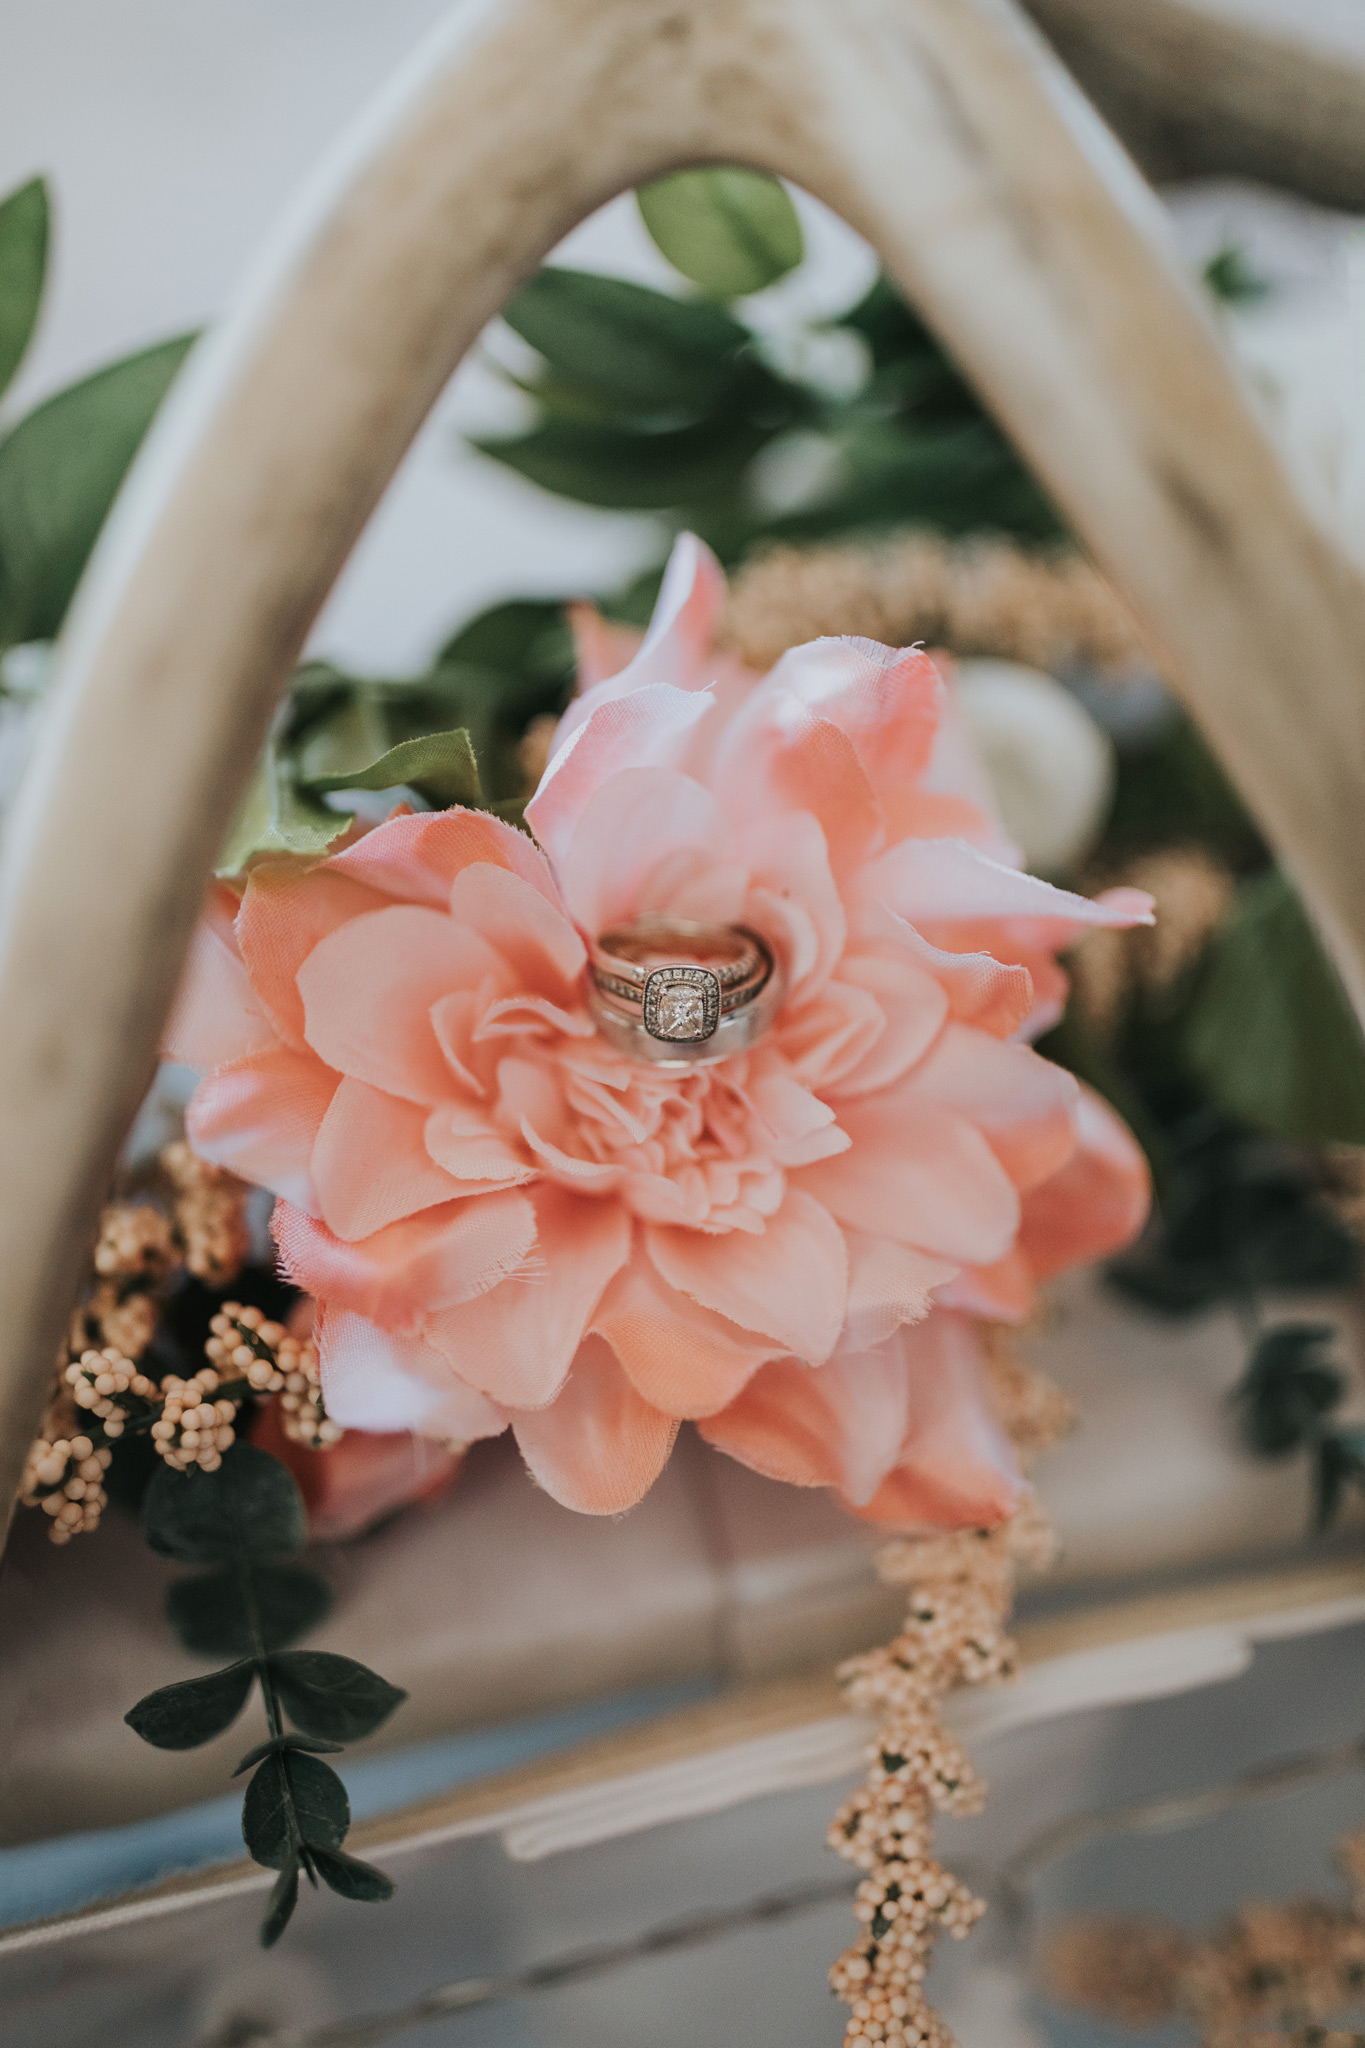 wedding rings in flowers detail photo